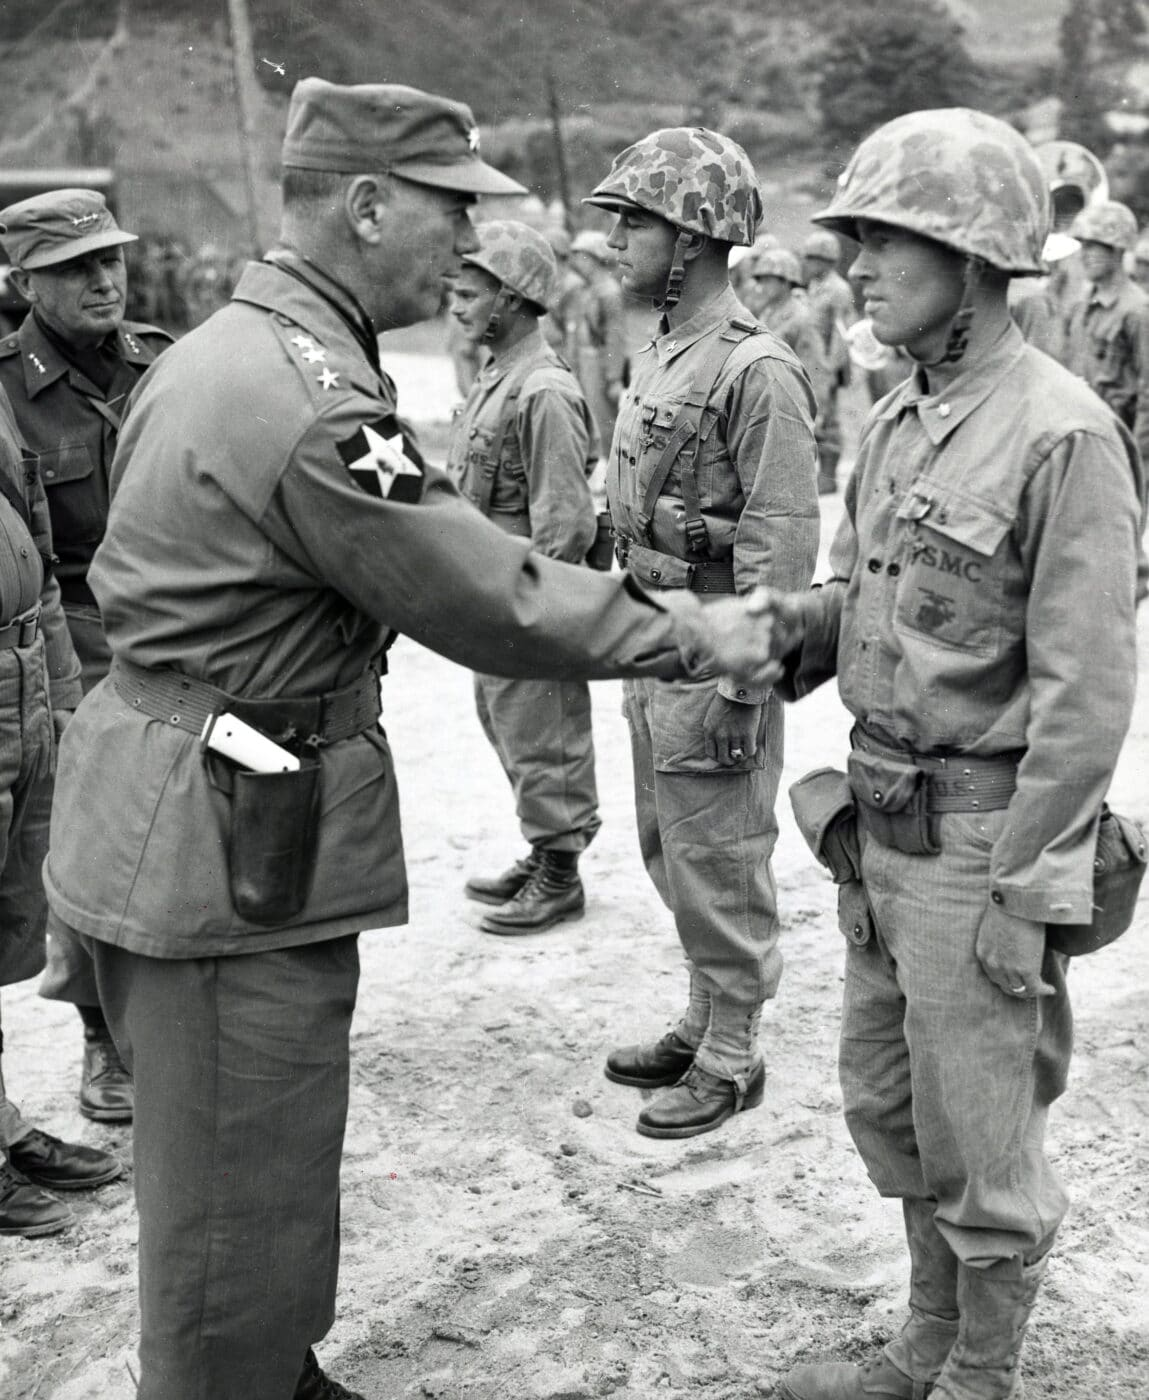 Lieutenant General James Van Fleet shakes hands with a soldier in the Korean War while carrying a 1911 pistol